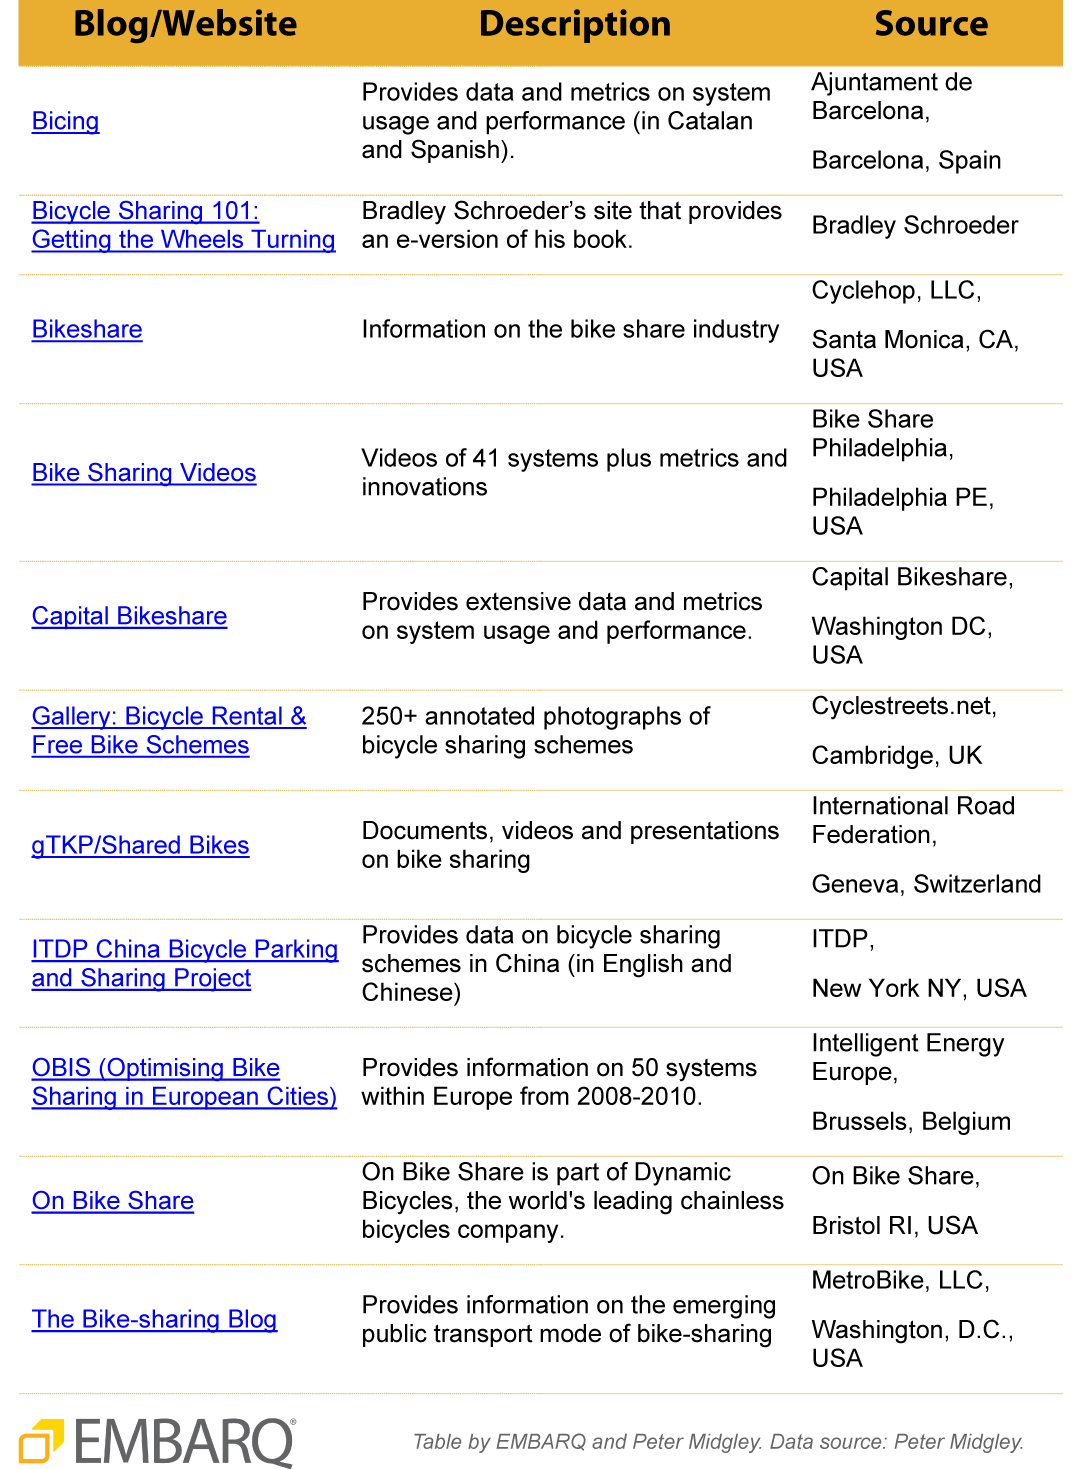 Bike-share report's go-to guide: Sites and blogs